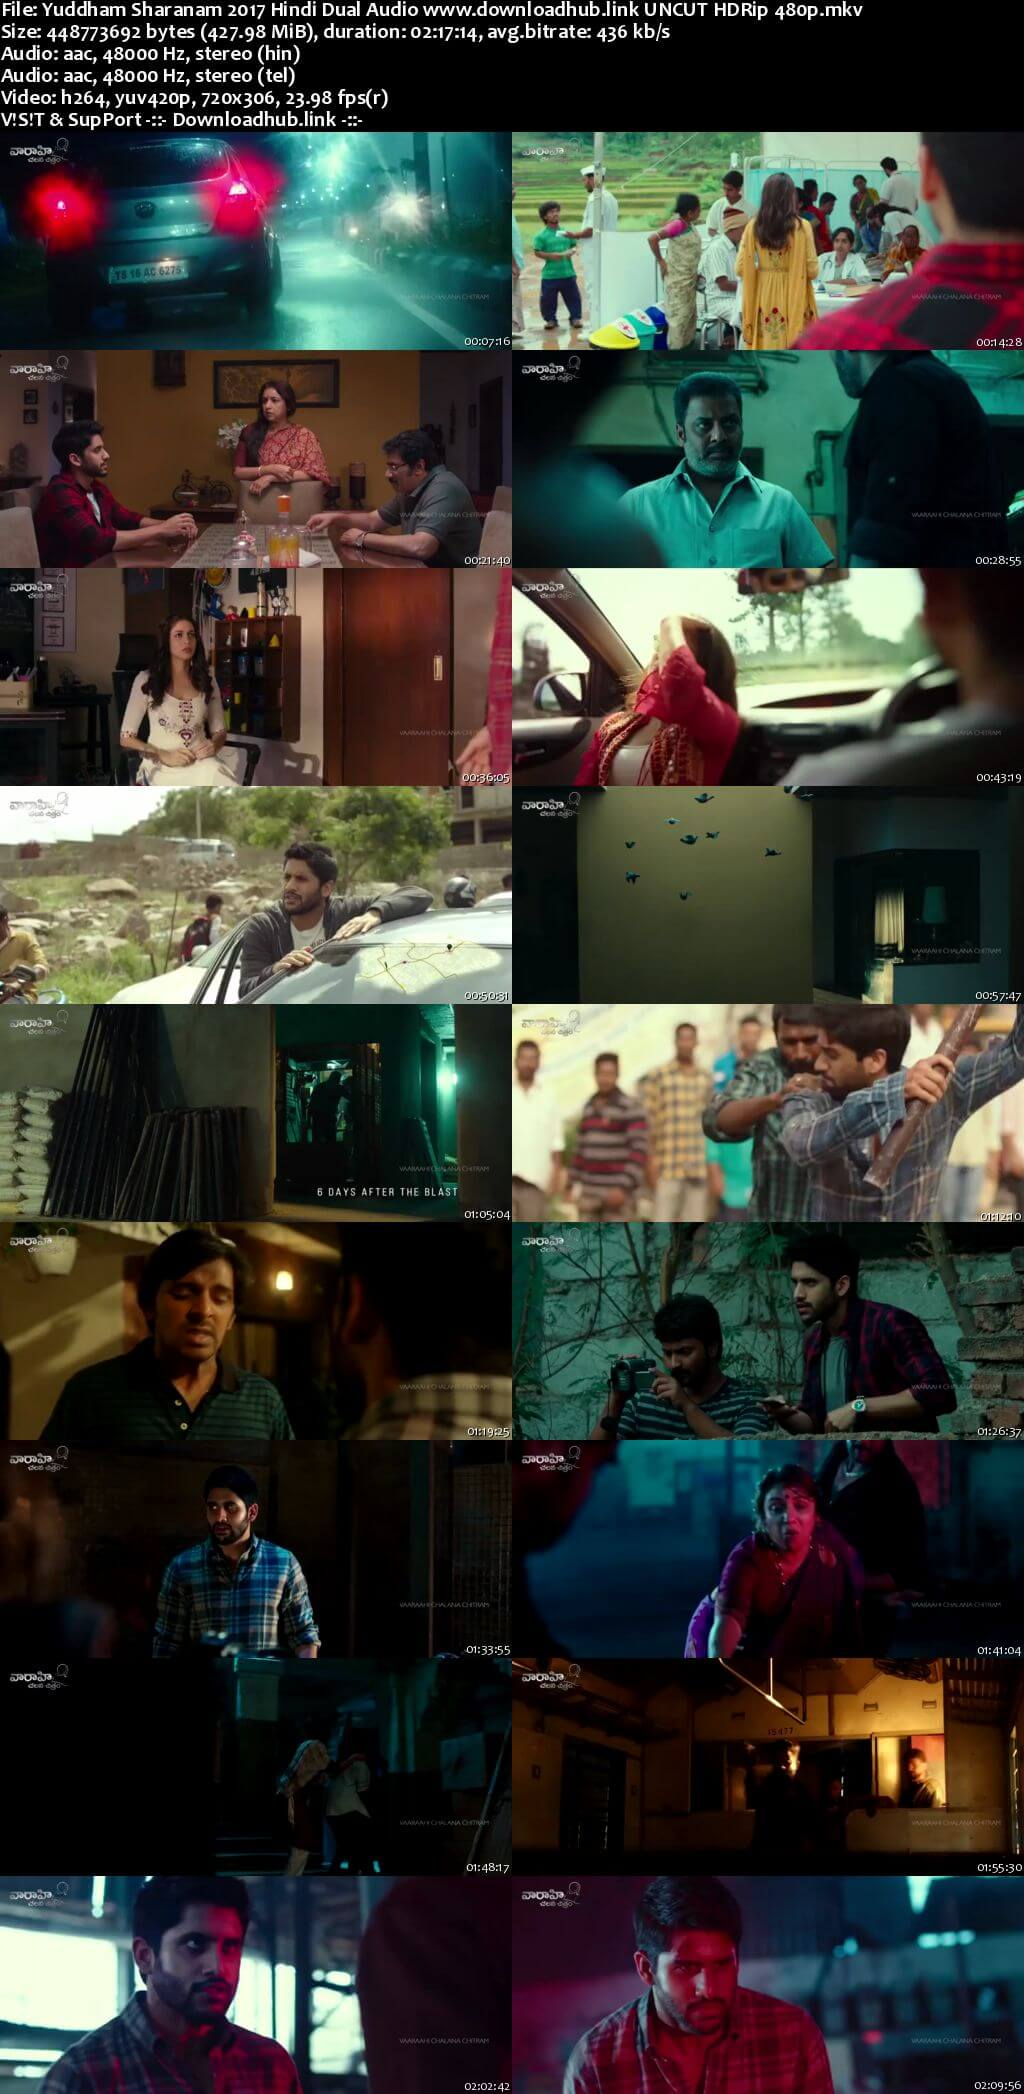 Yuddham Sharanam 2017 Hindi Dual Audio 400MB UNCUT HDRip 480p